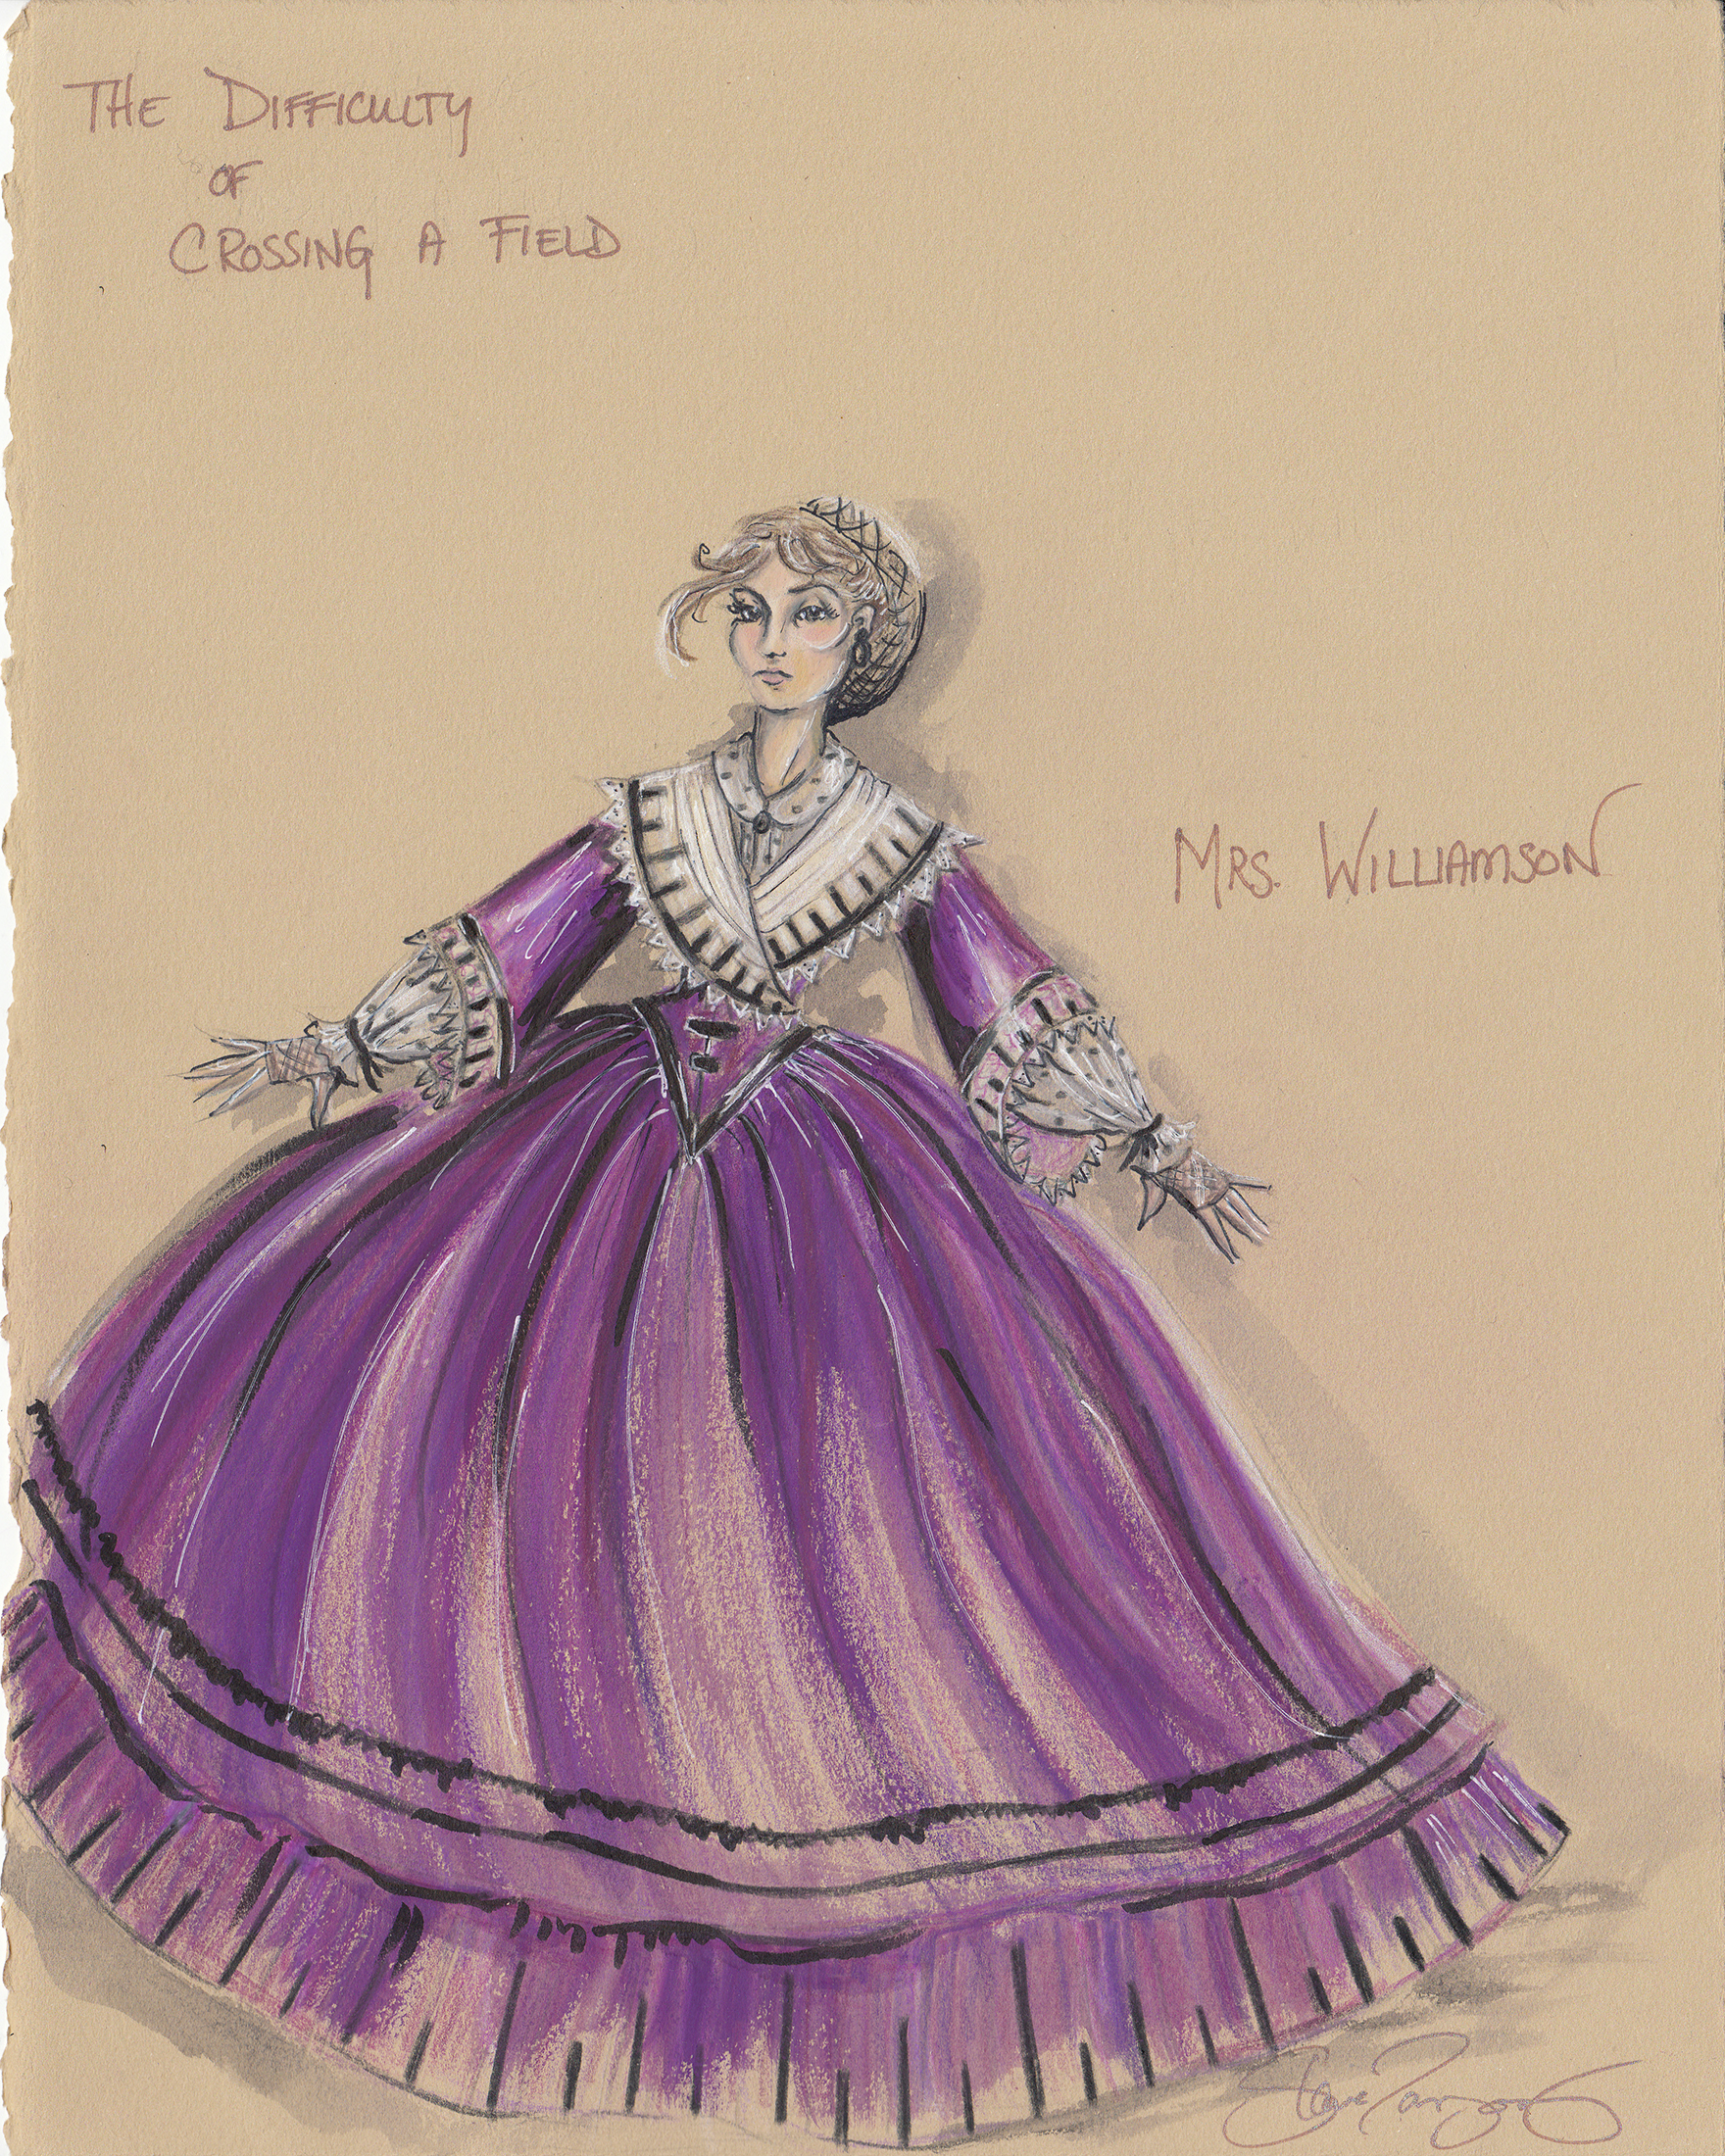 Costume Rendering for the 'Old Woman' in The Difficulty of Crossing a Field